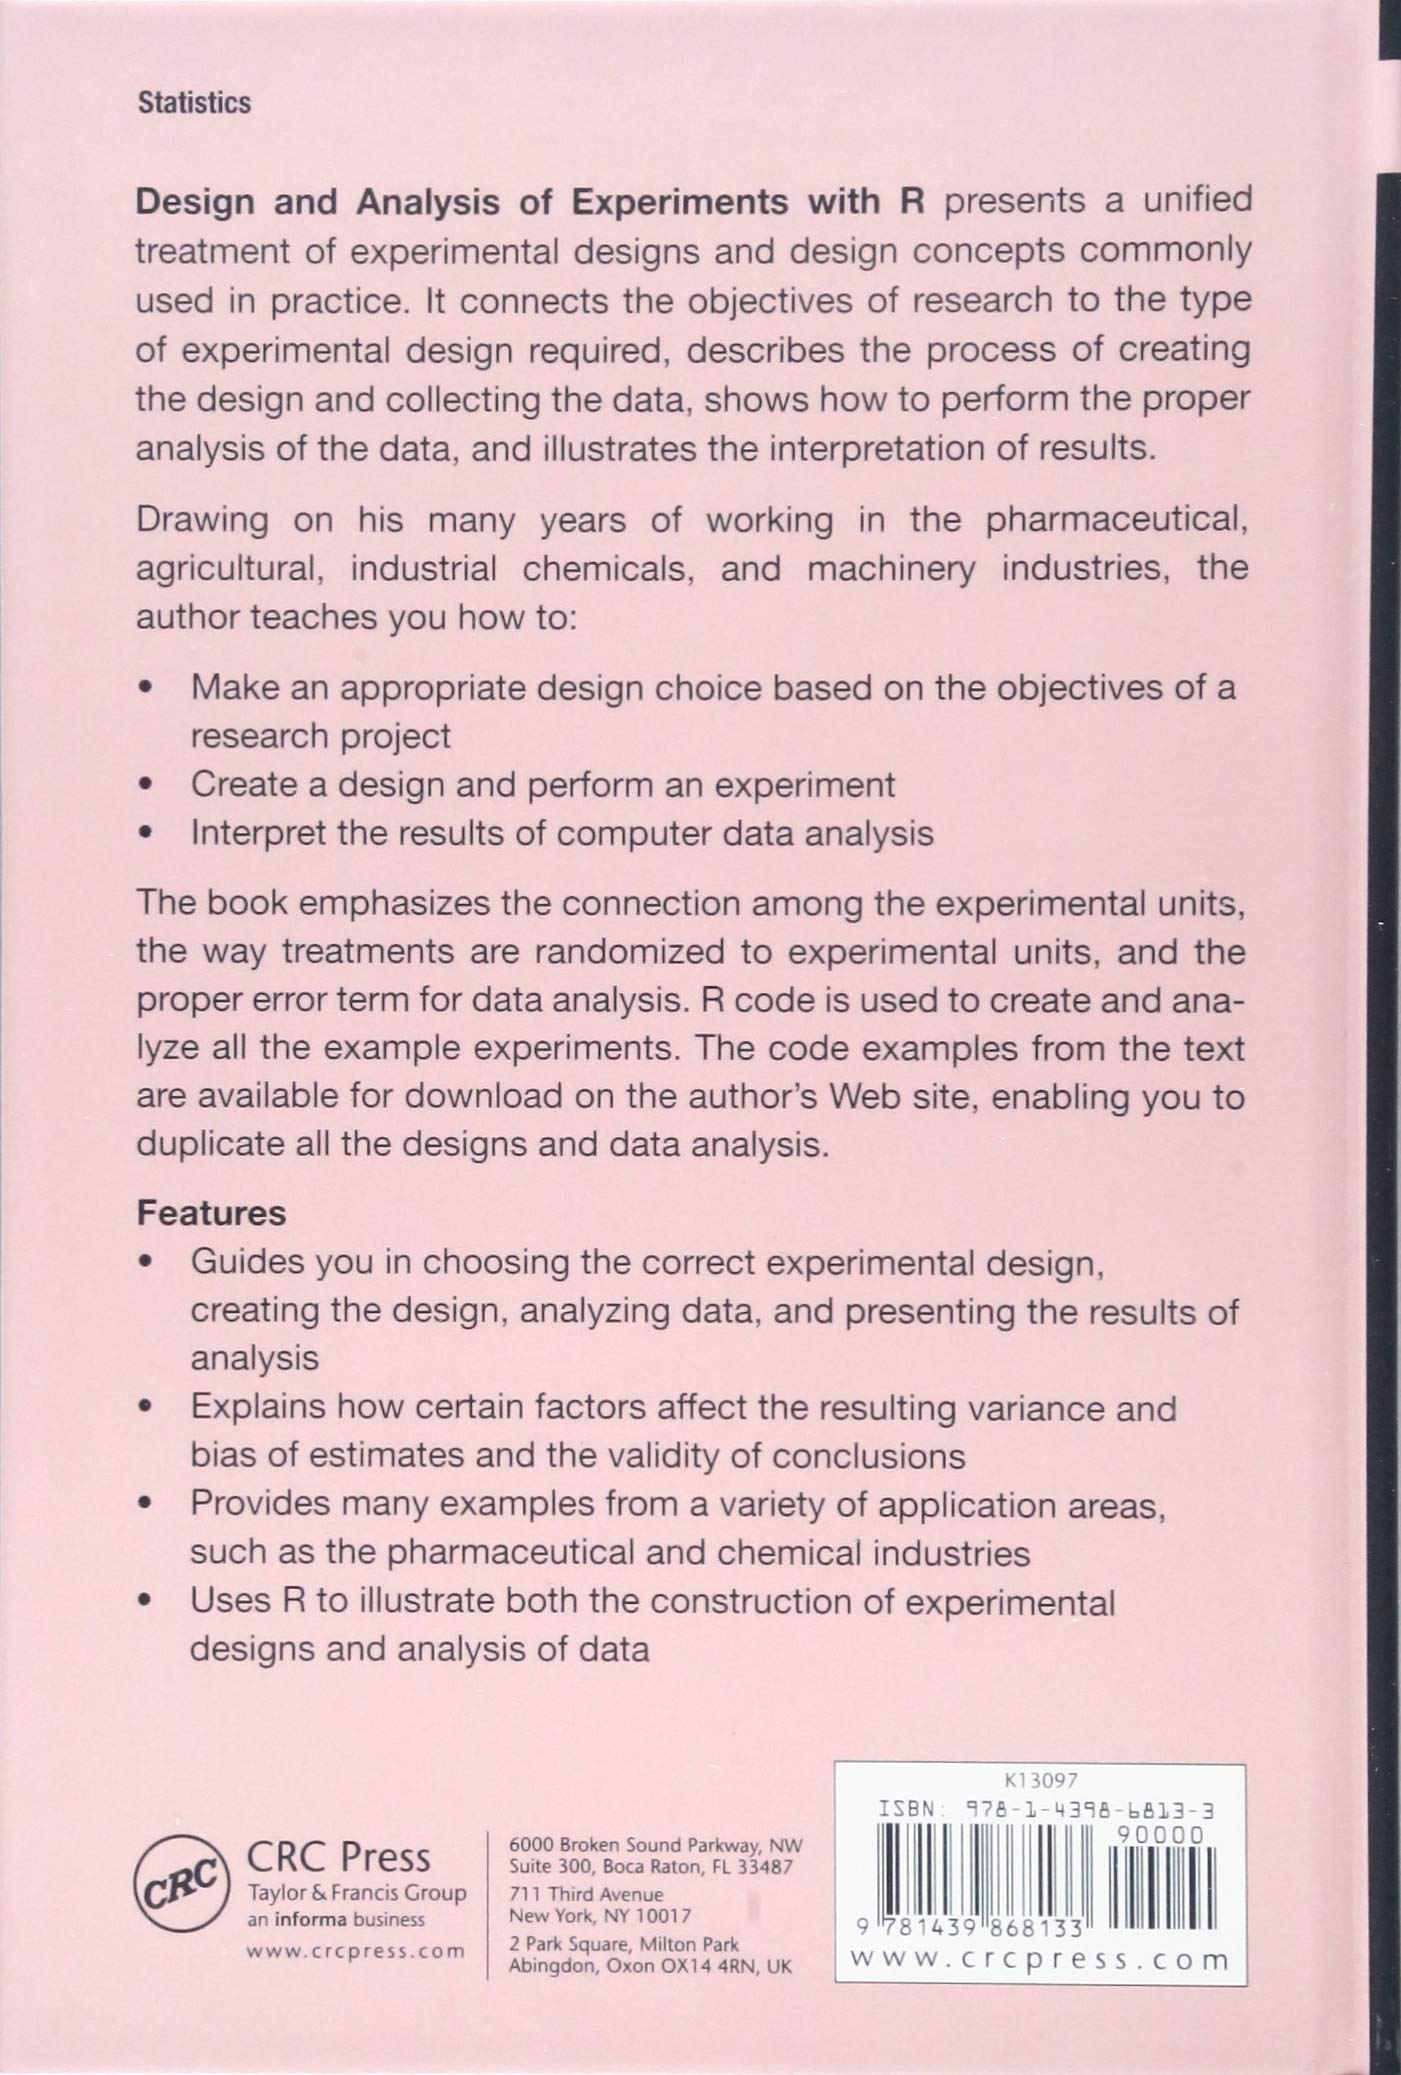 Design and Analysis of Experiments with R (Chapman & Hall/CRC Texts